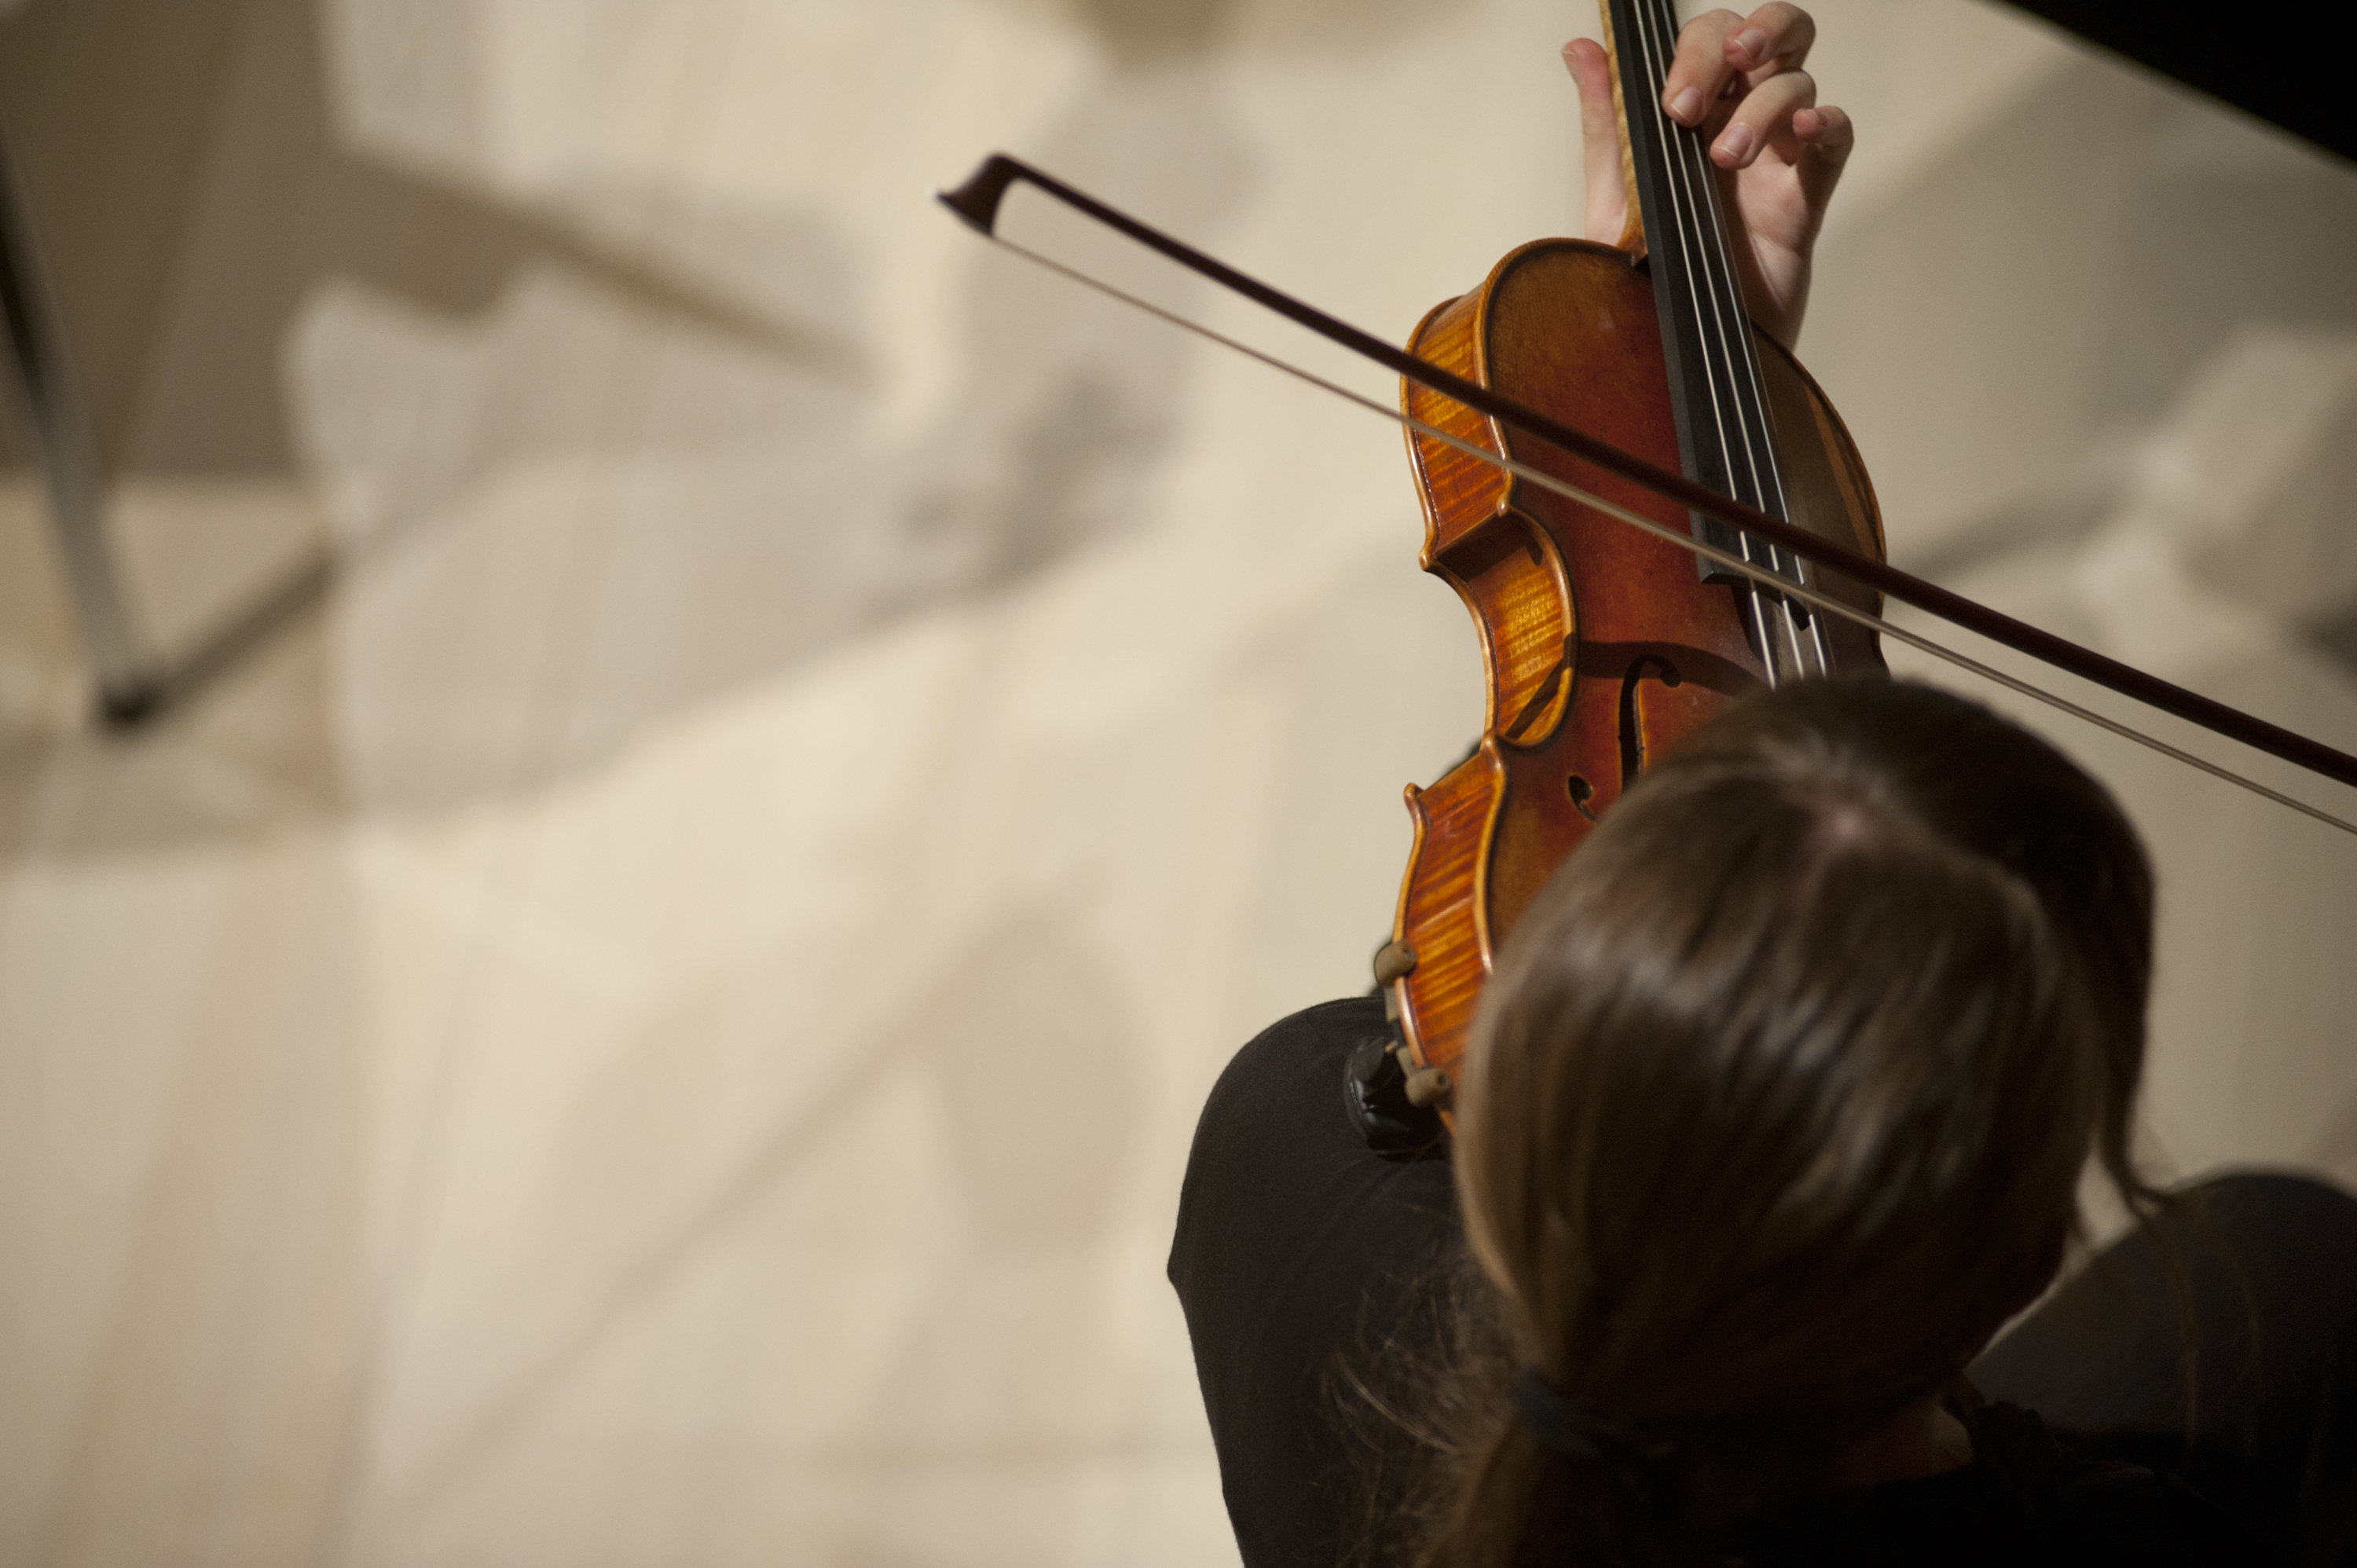 violinist performing in a concert